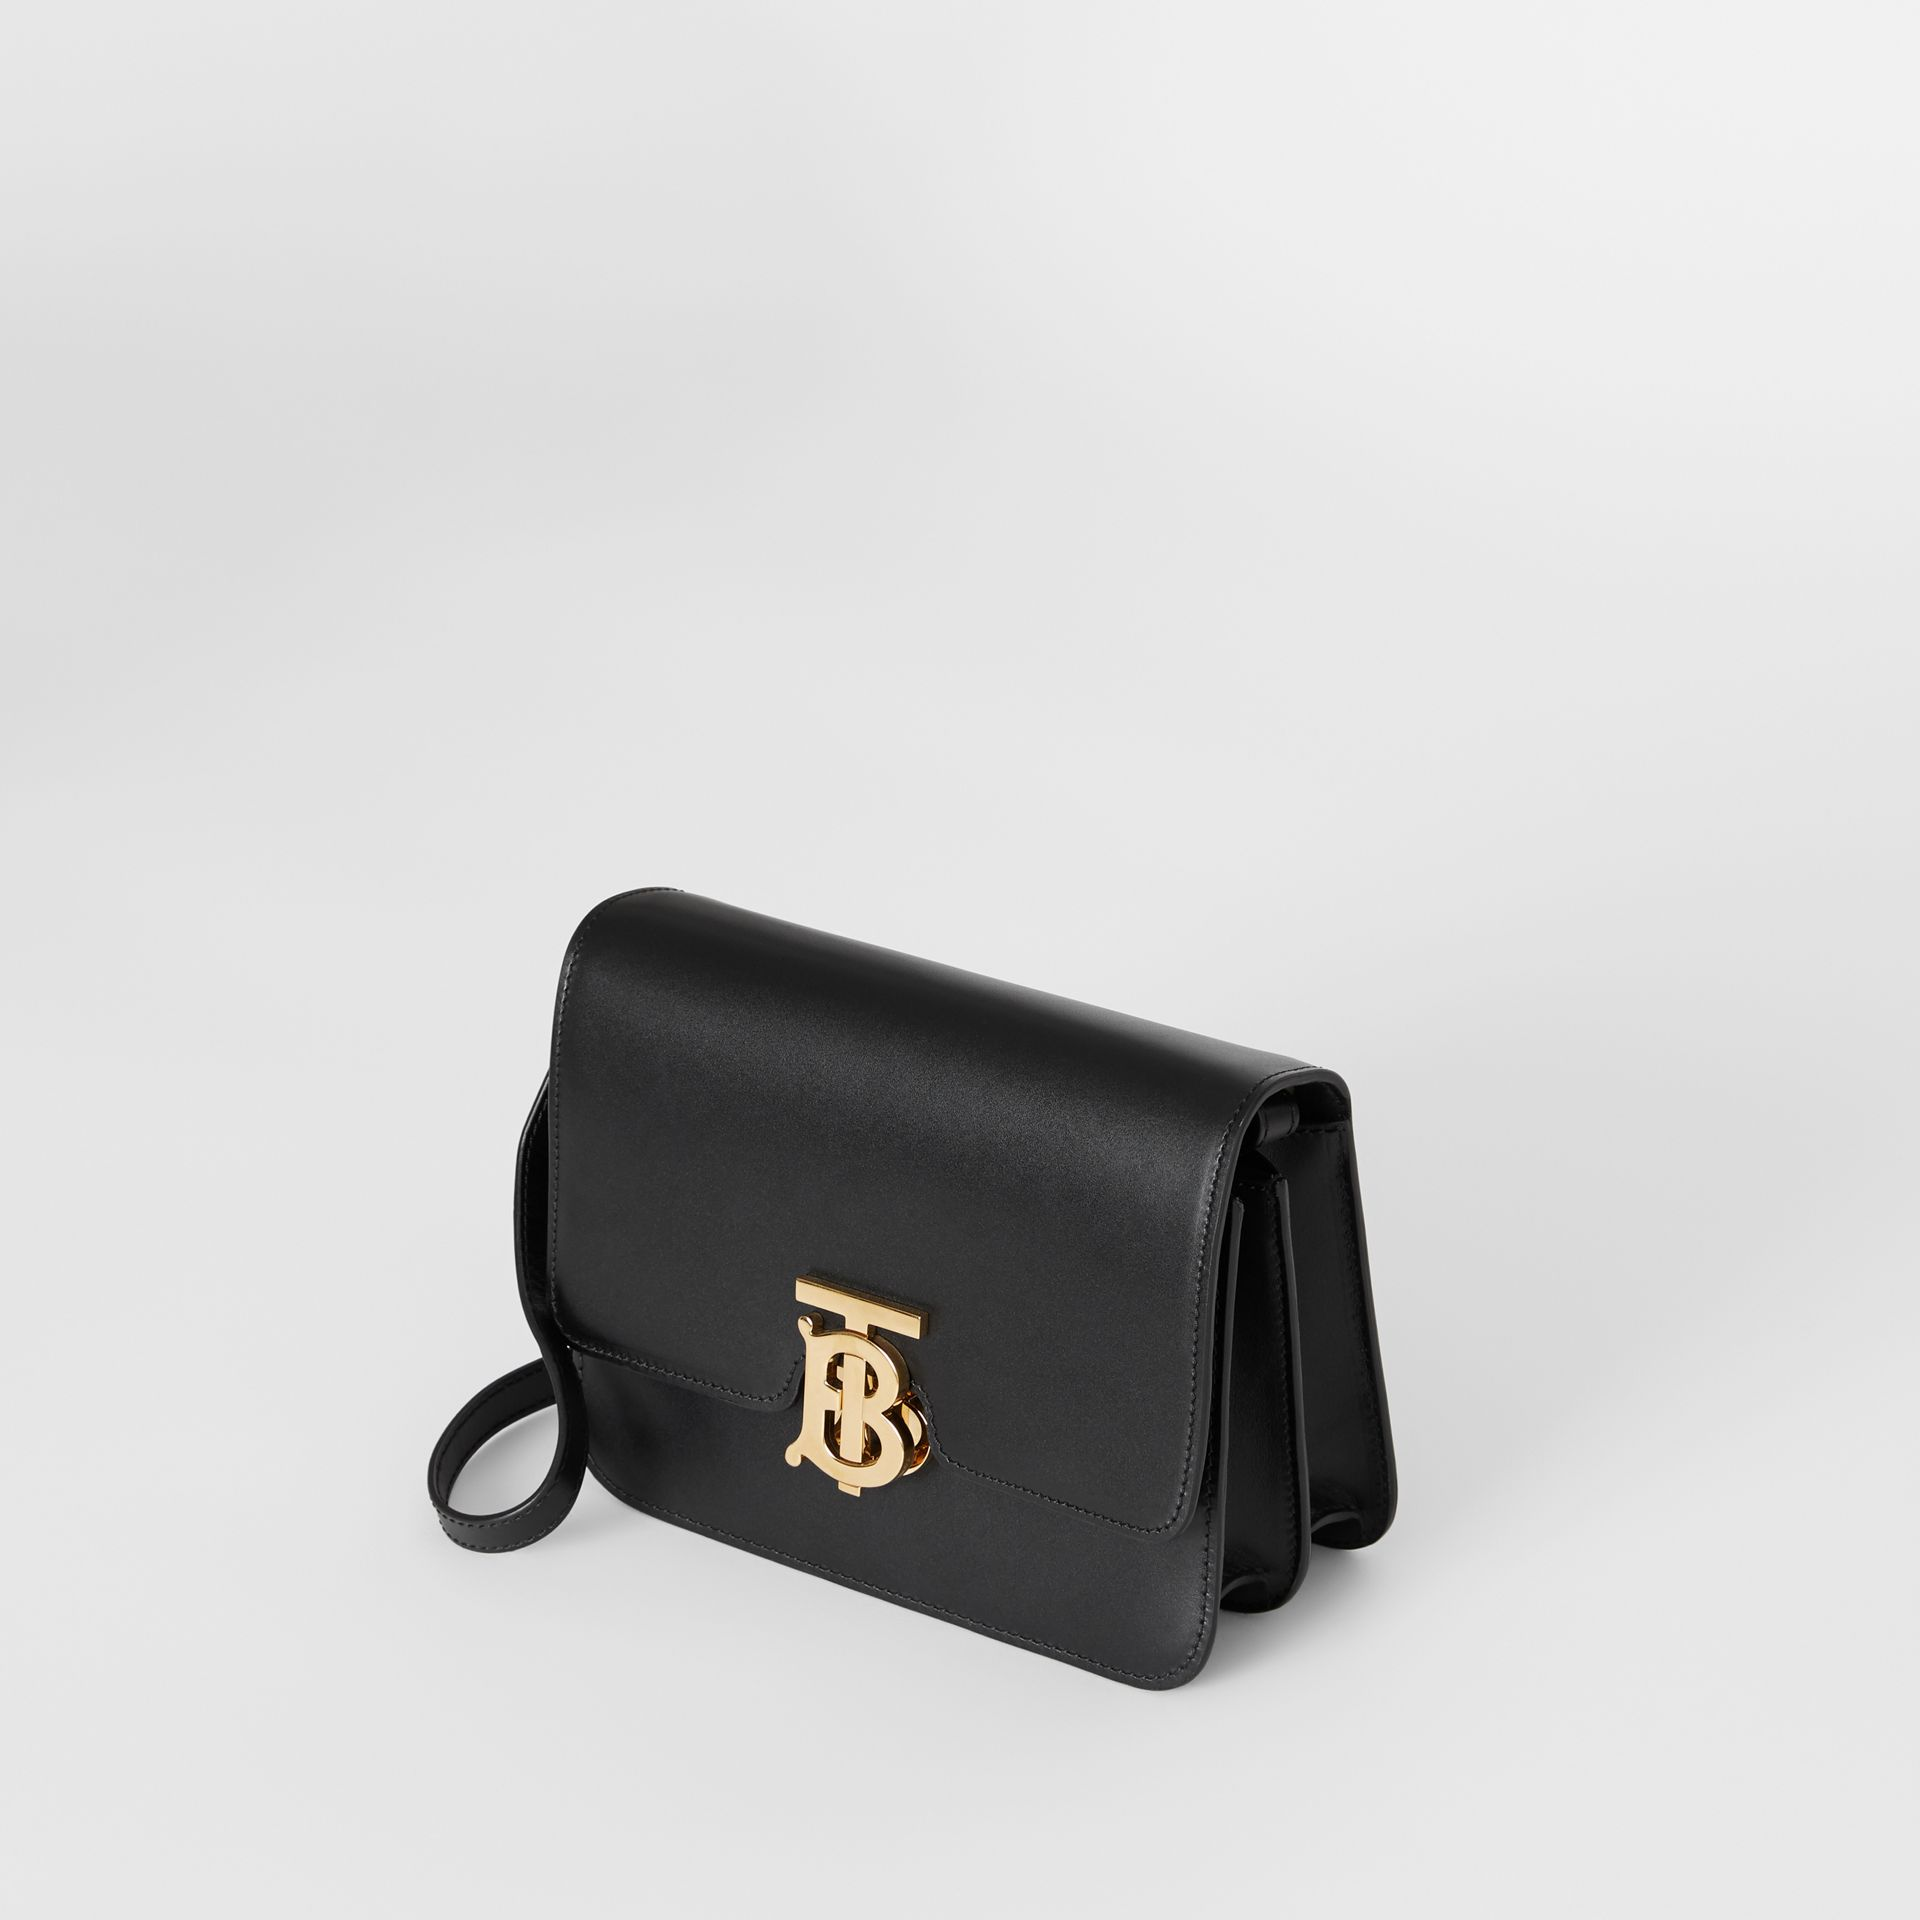 Small Leather TB Bag in Black - Women | Burberry - gallery image 2